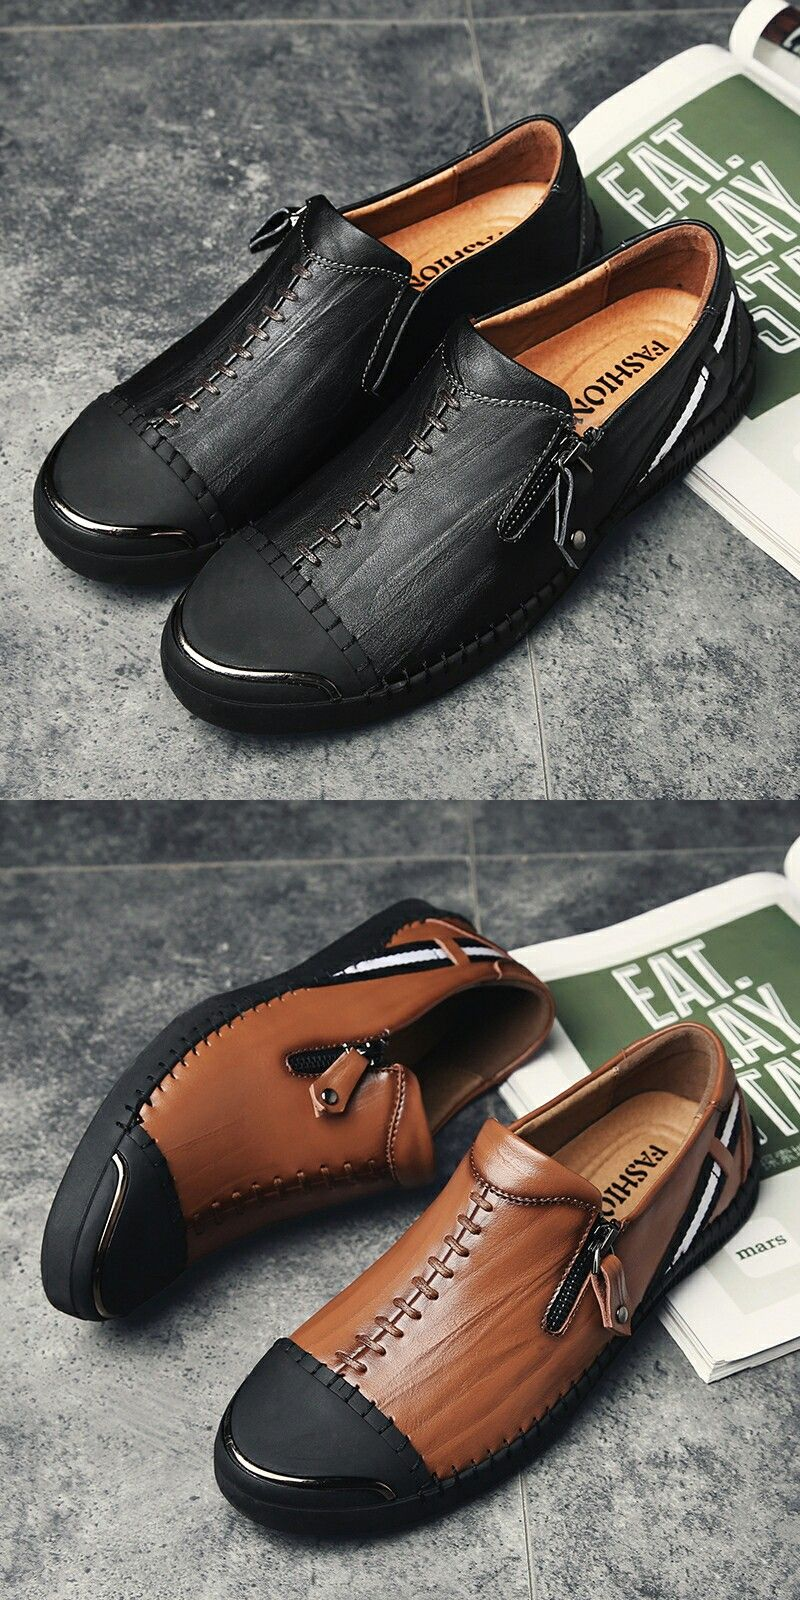 Vehicles Pattern Car Trucker Breathable Fashion Sneakers Running Shoes Slip-On Loafers Classic Shoes